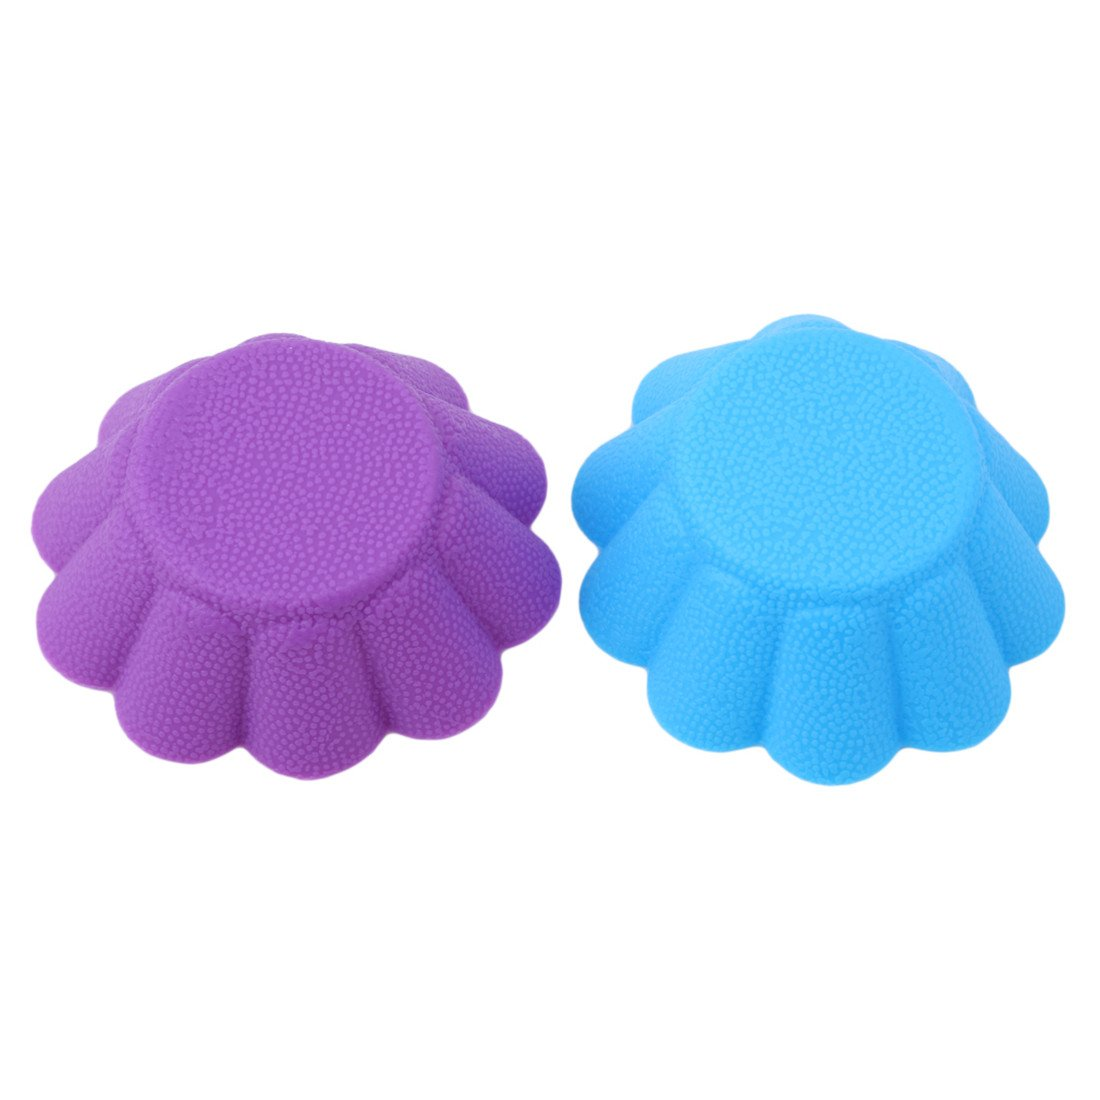 VWH 6Pcs Flower Shaped Silicone Cake Cup Kitchen Tools by VWH (Image #3)